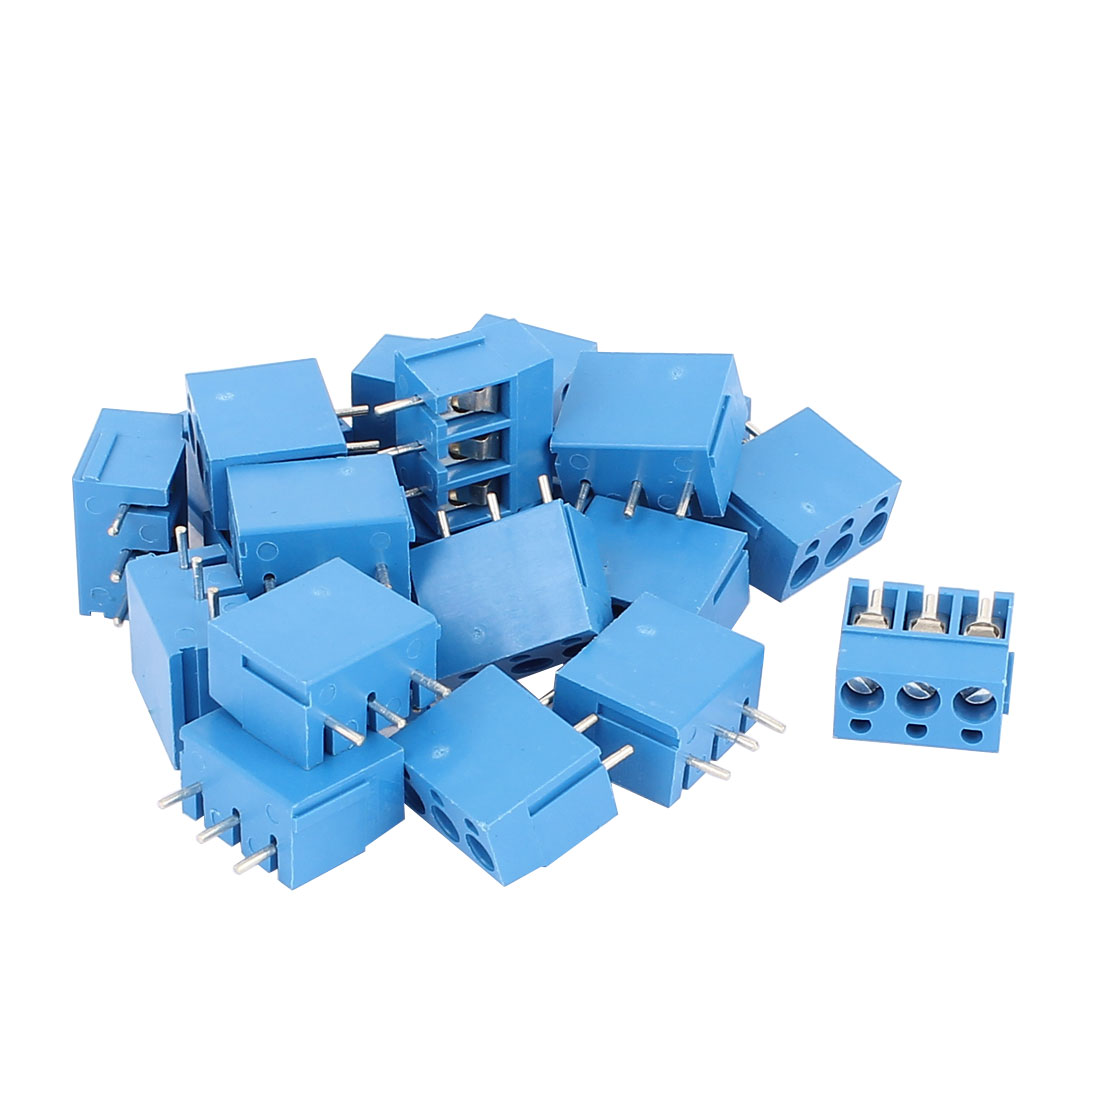 22 Pcs 5.08mm Pitch 3P Male PCB Pluggable Terminal Block Connector